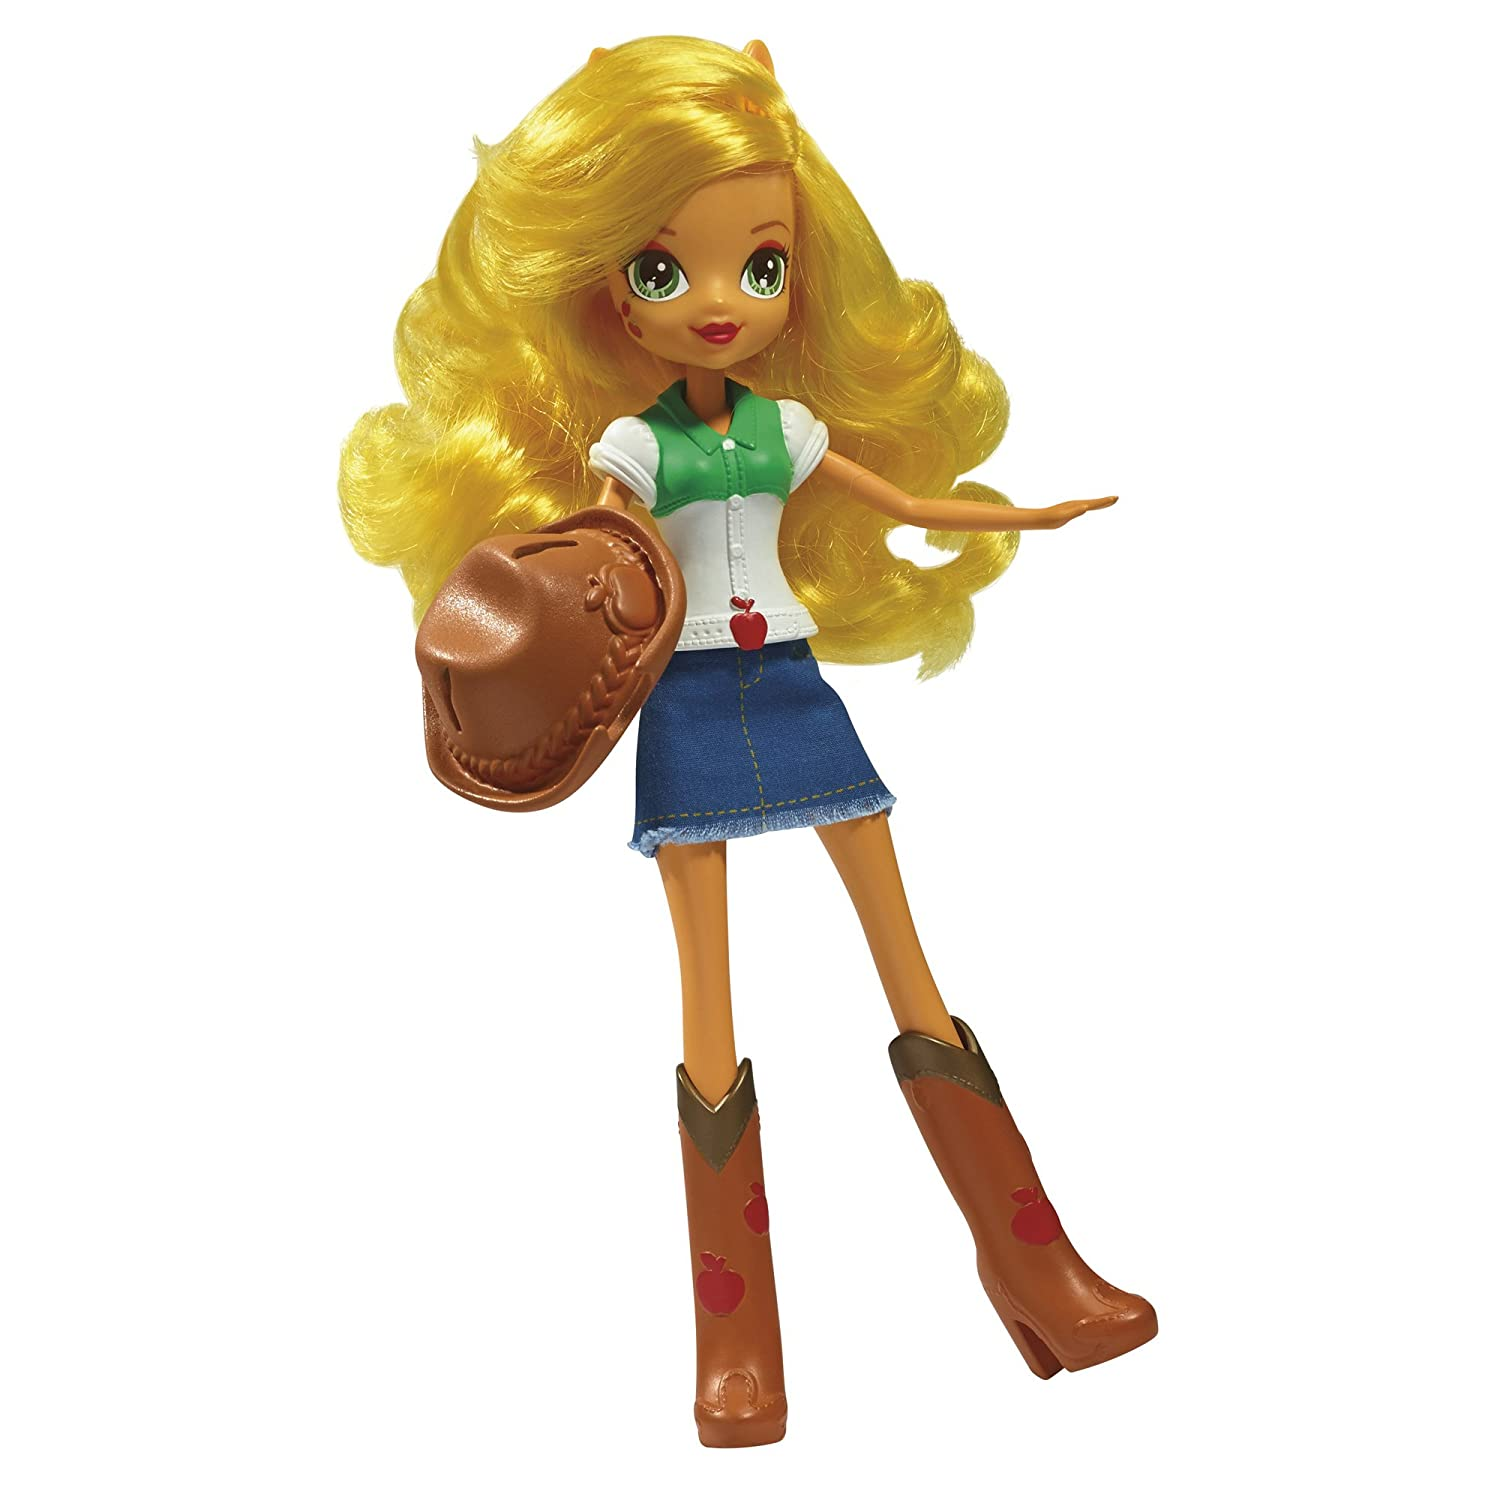 Amazoncom My Little Pony Equestria Girls Collection Applejack